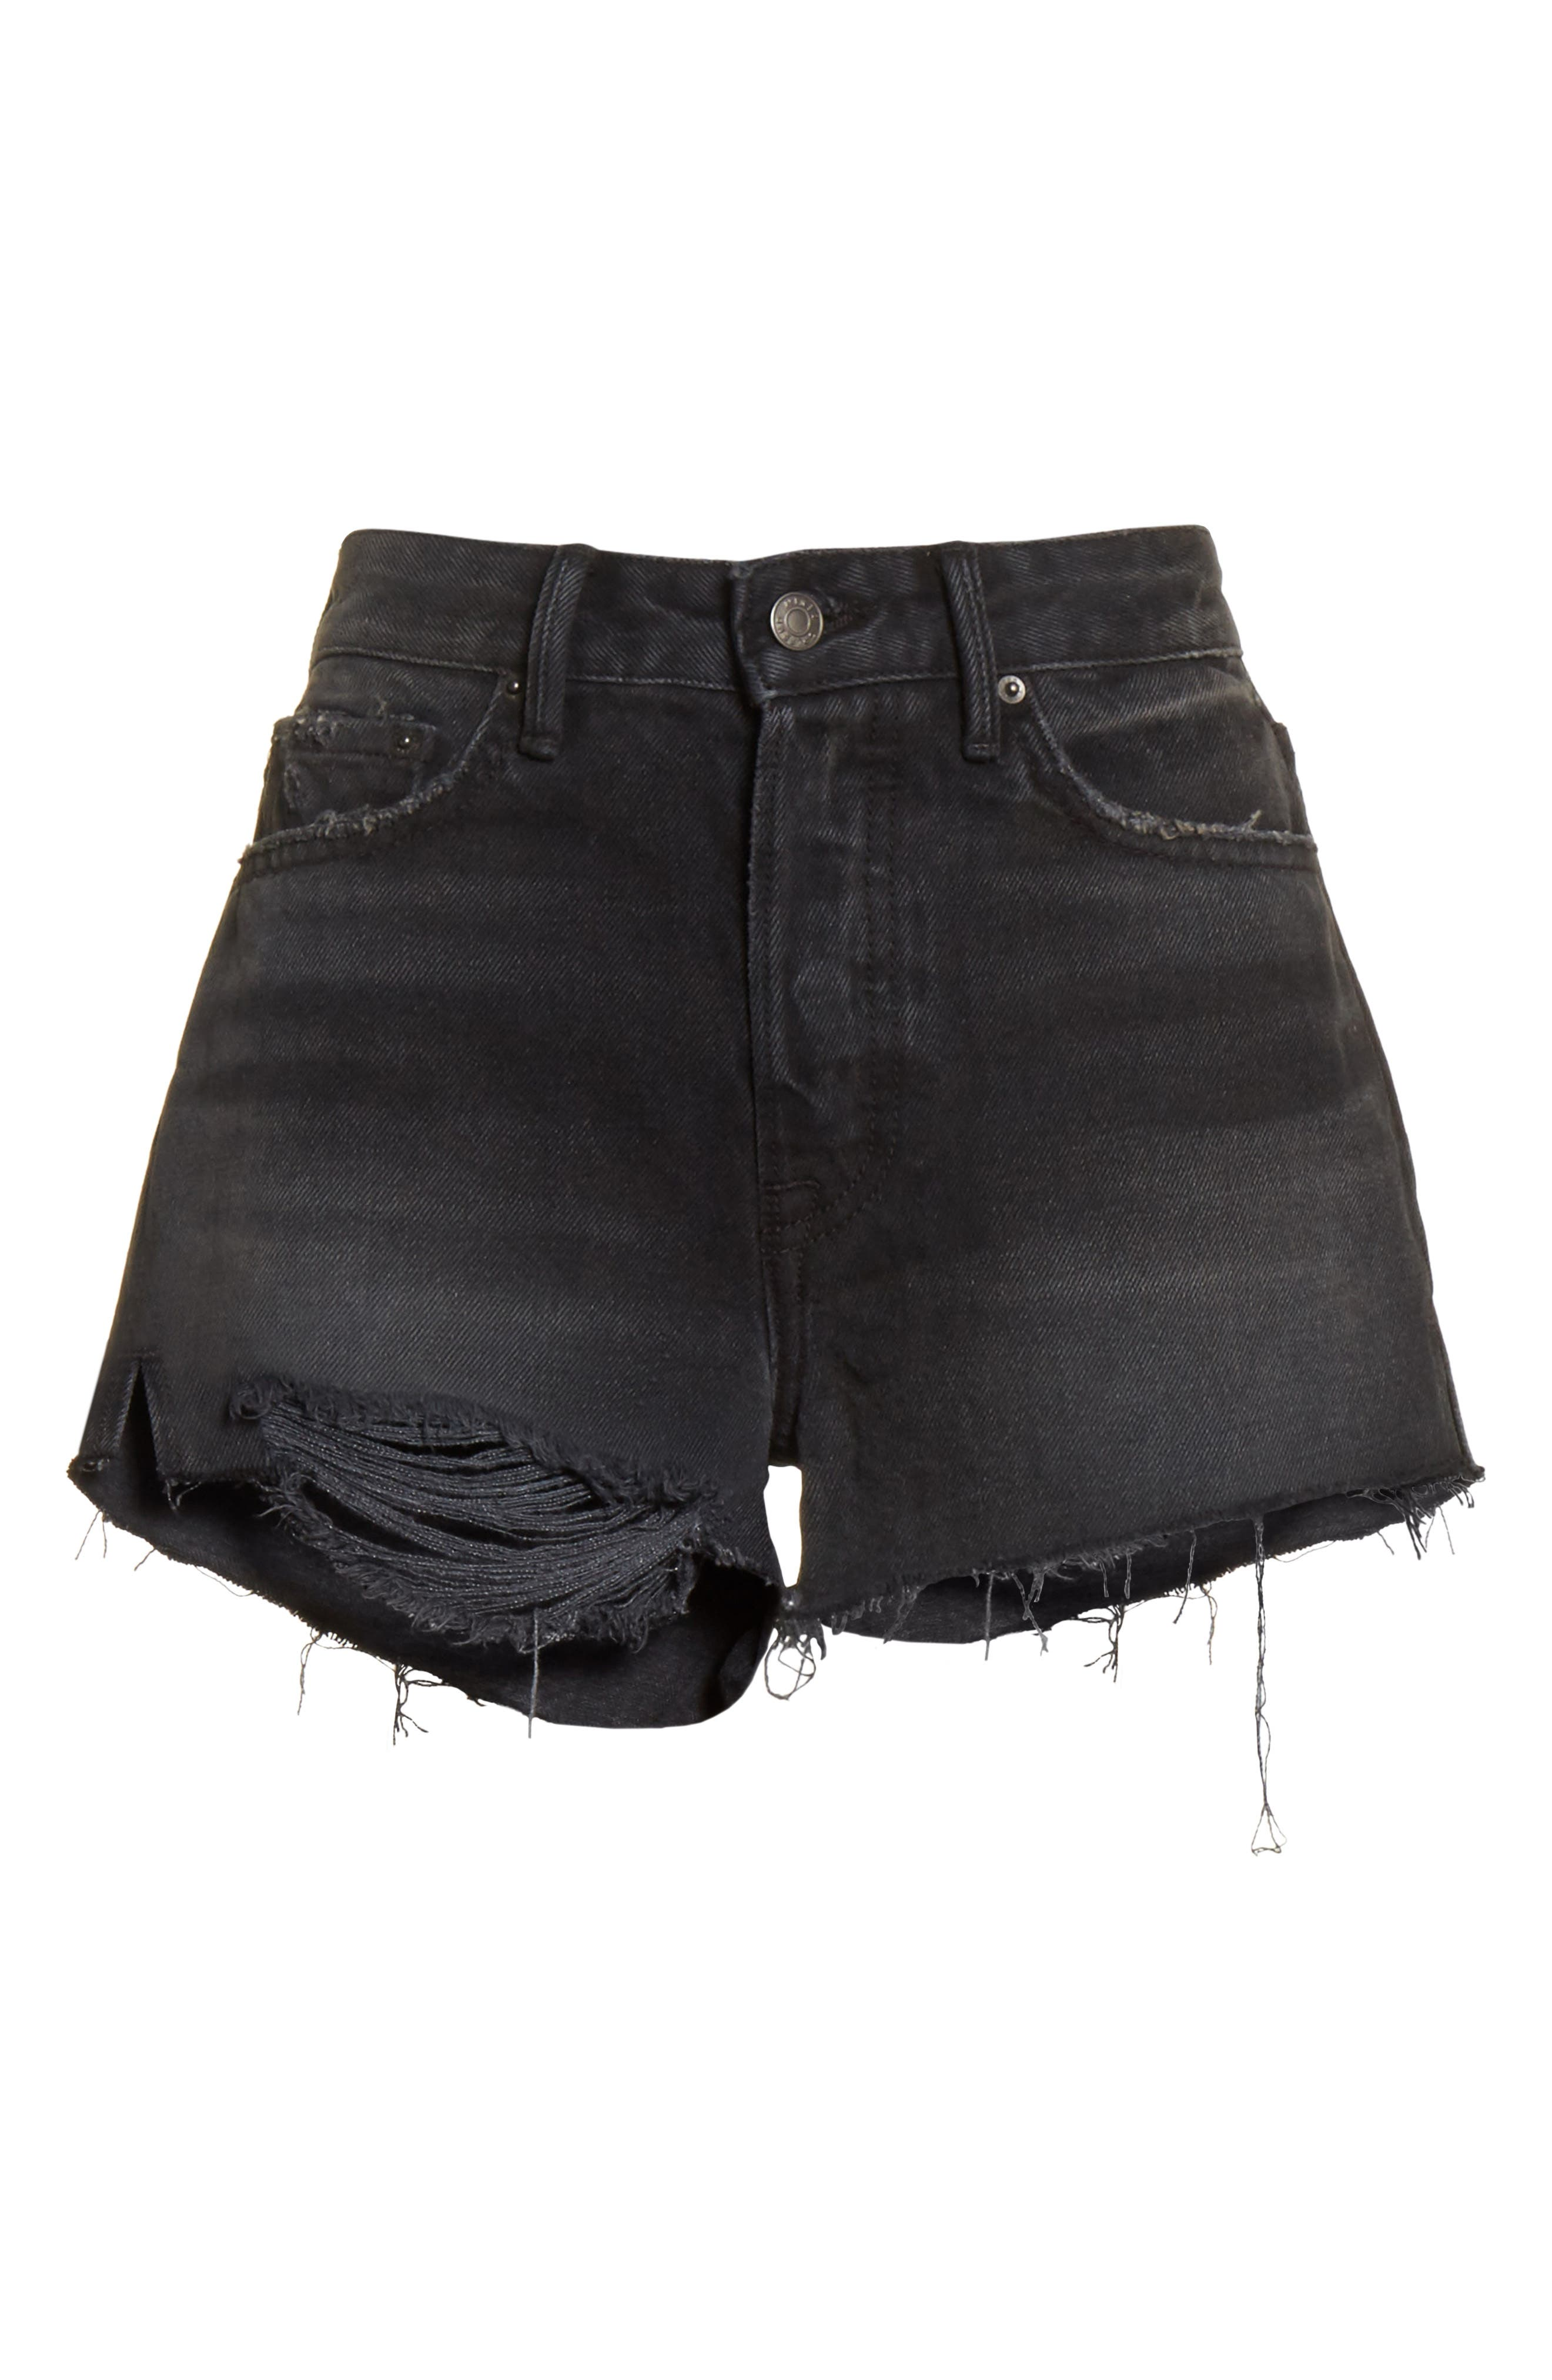 Cindy Rigid High Waist Denim Shorts,                             Alternate thumbnail 6, color,                             007